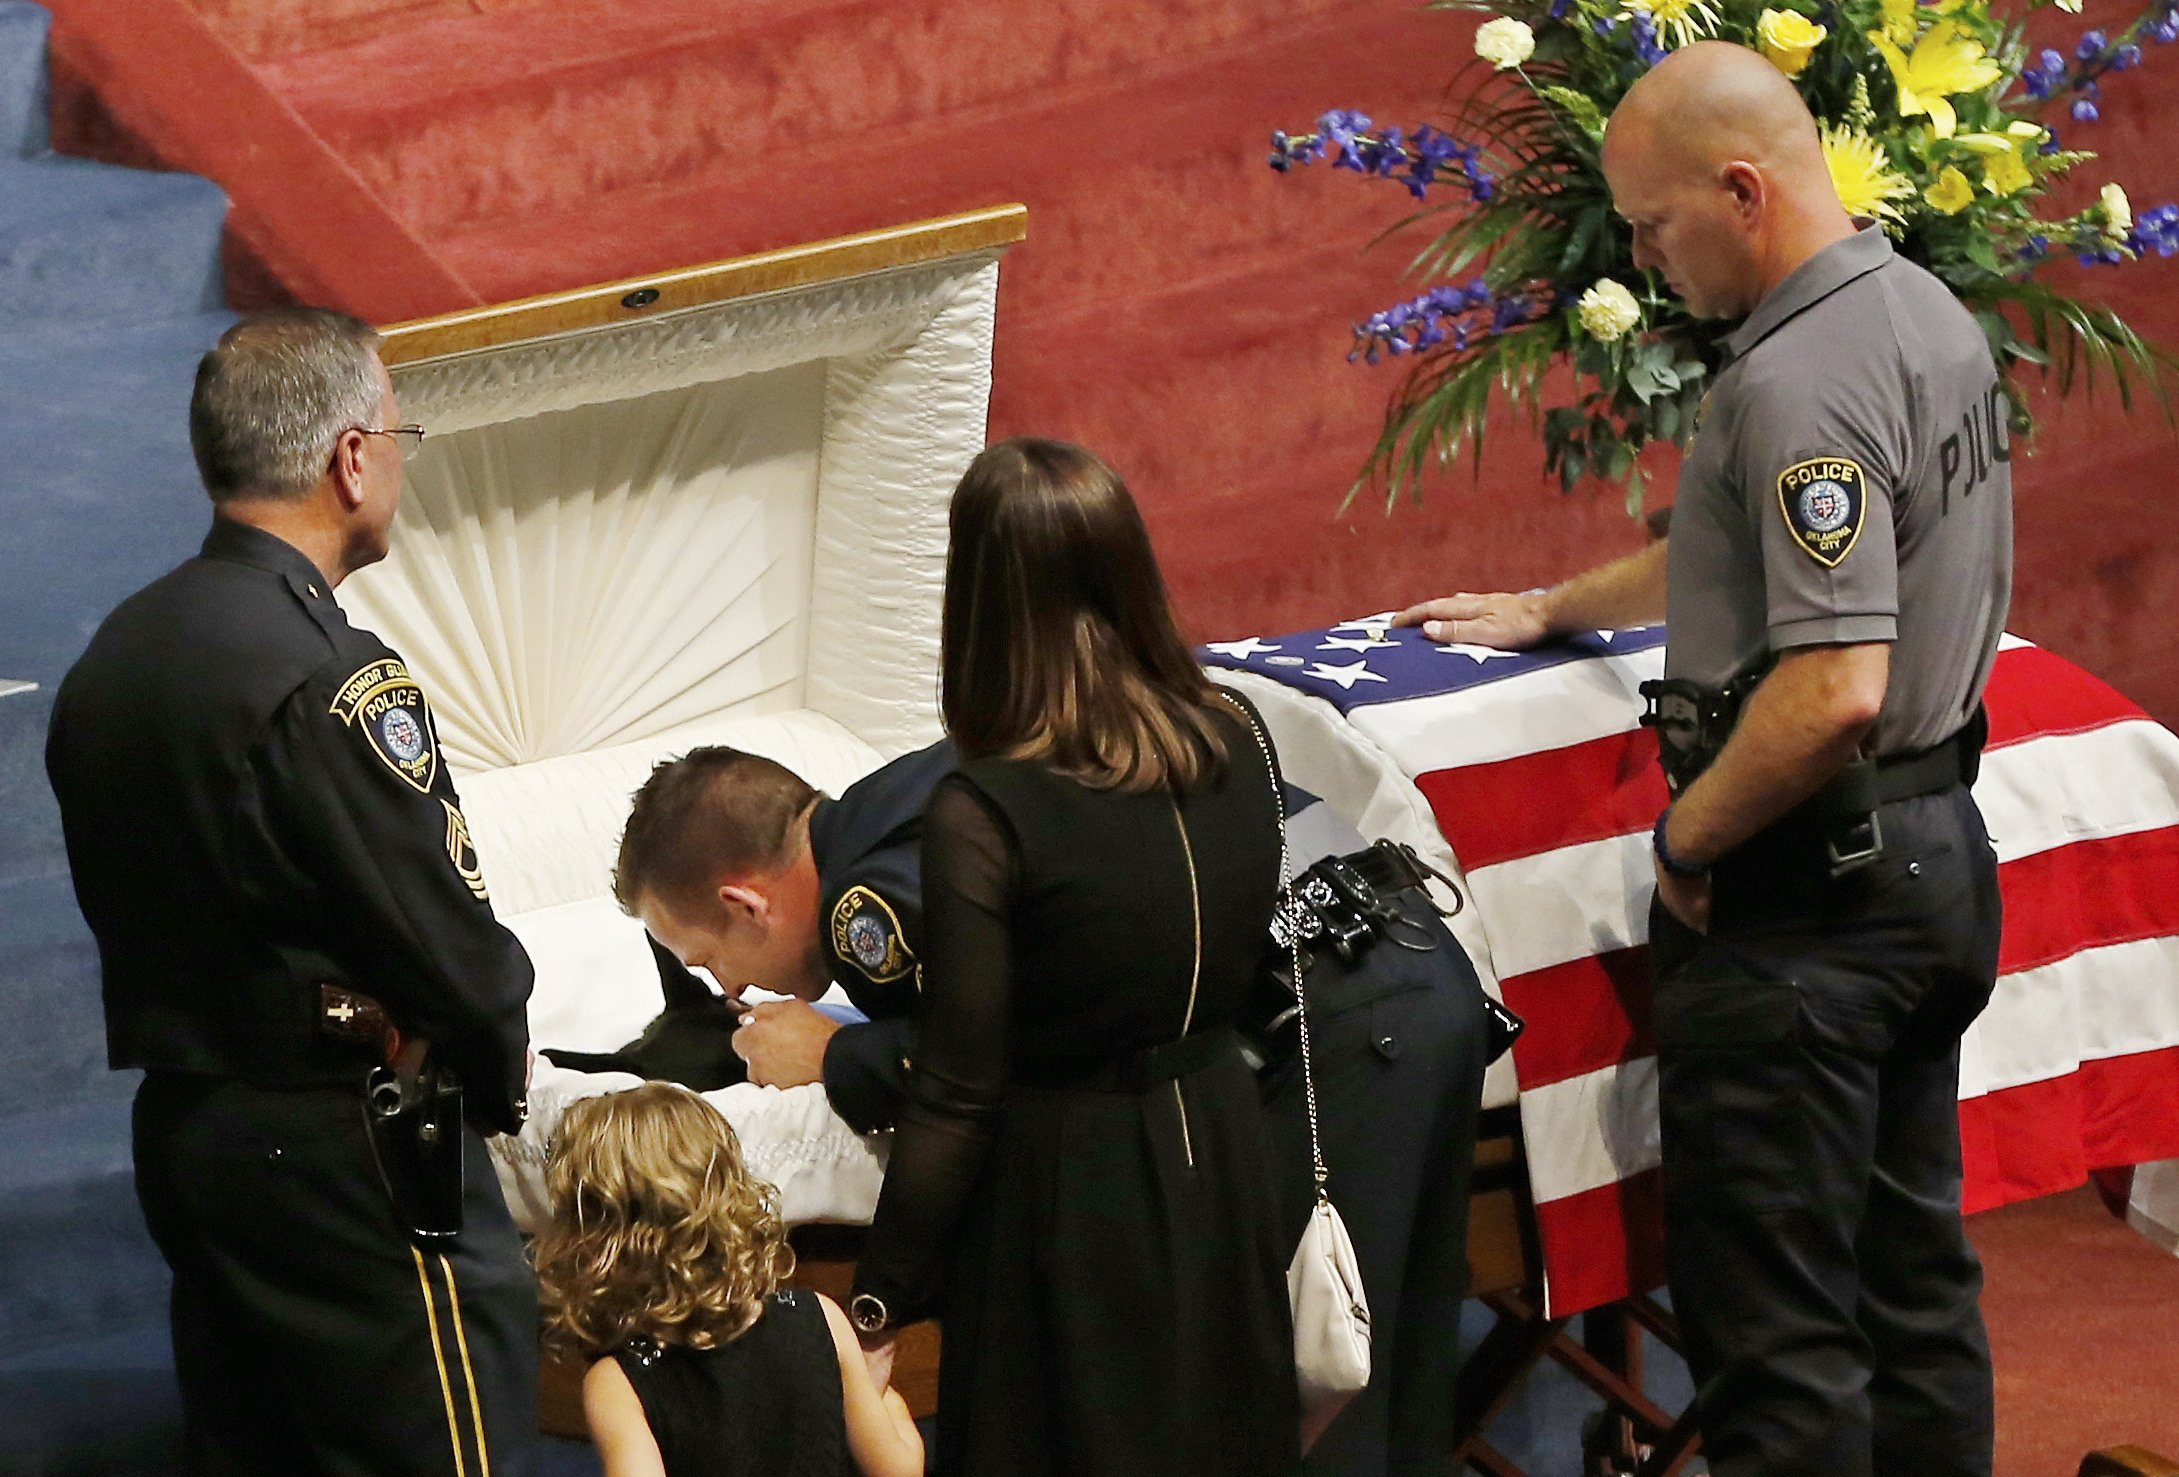 Oklahoma City police officer Sgt. Ryan Stark, center, leans over the casket of his canine partner, K-9 Kye, following funeral services for the dog in Oklahoma City, on Aug. 28, 2014.